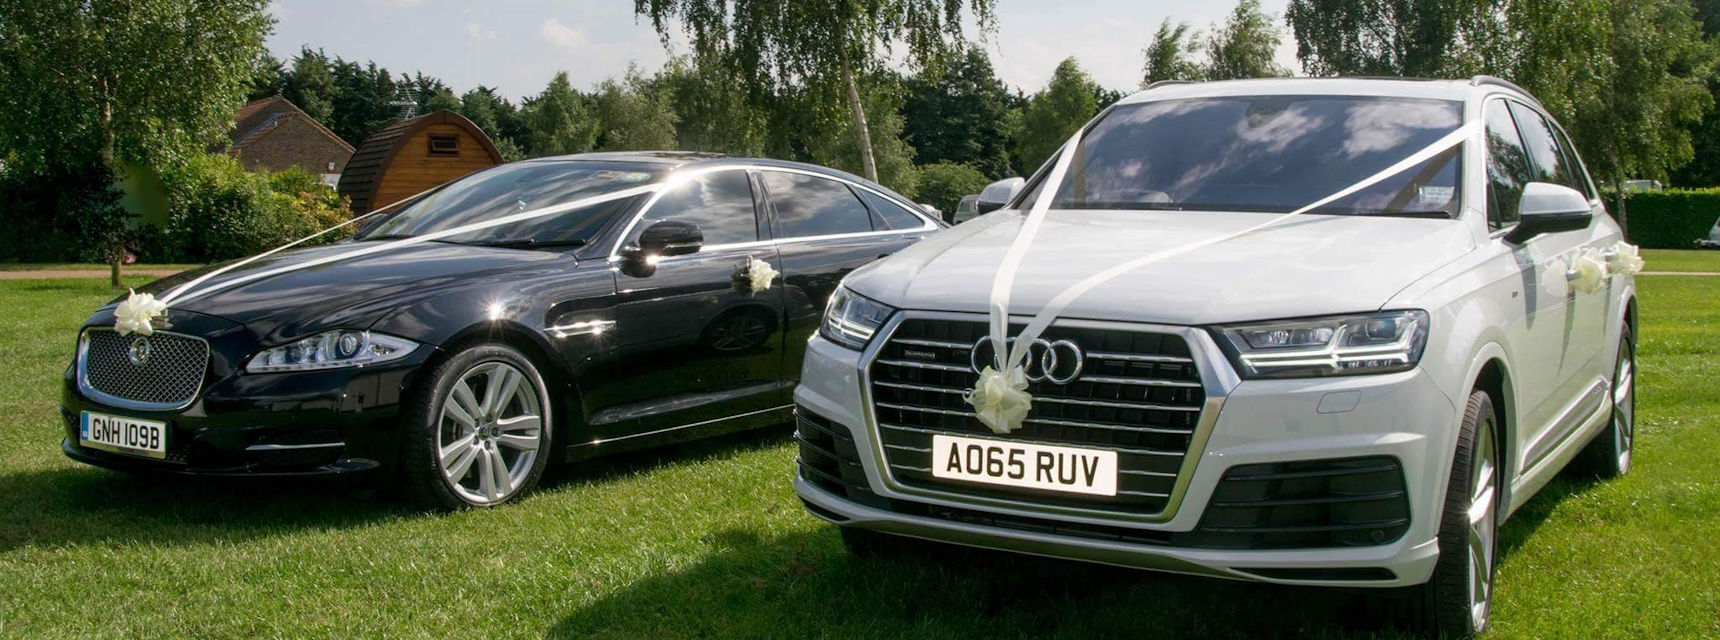 Wedding Cars from Taxis - NOrwich Wymondham Diss Attleborough